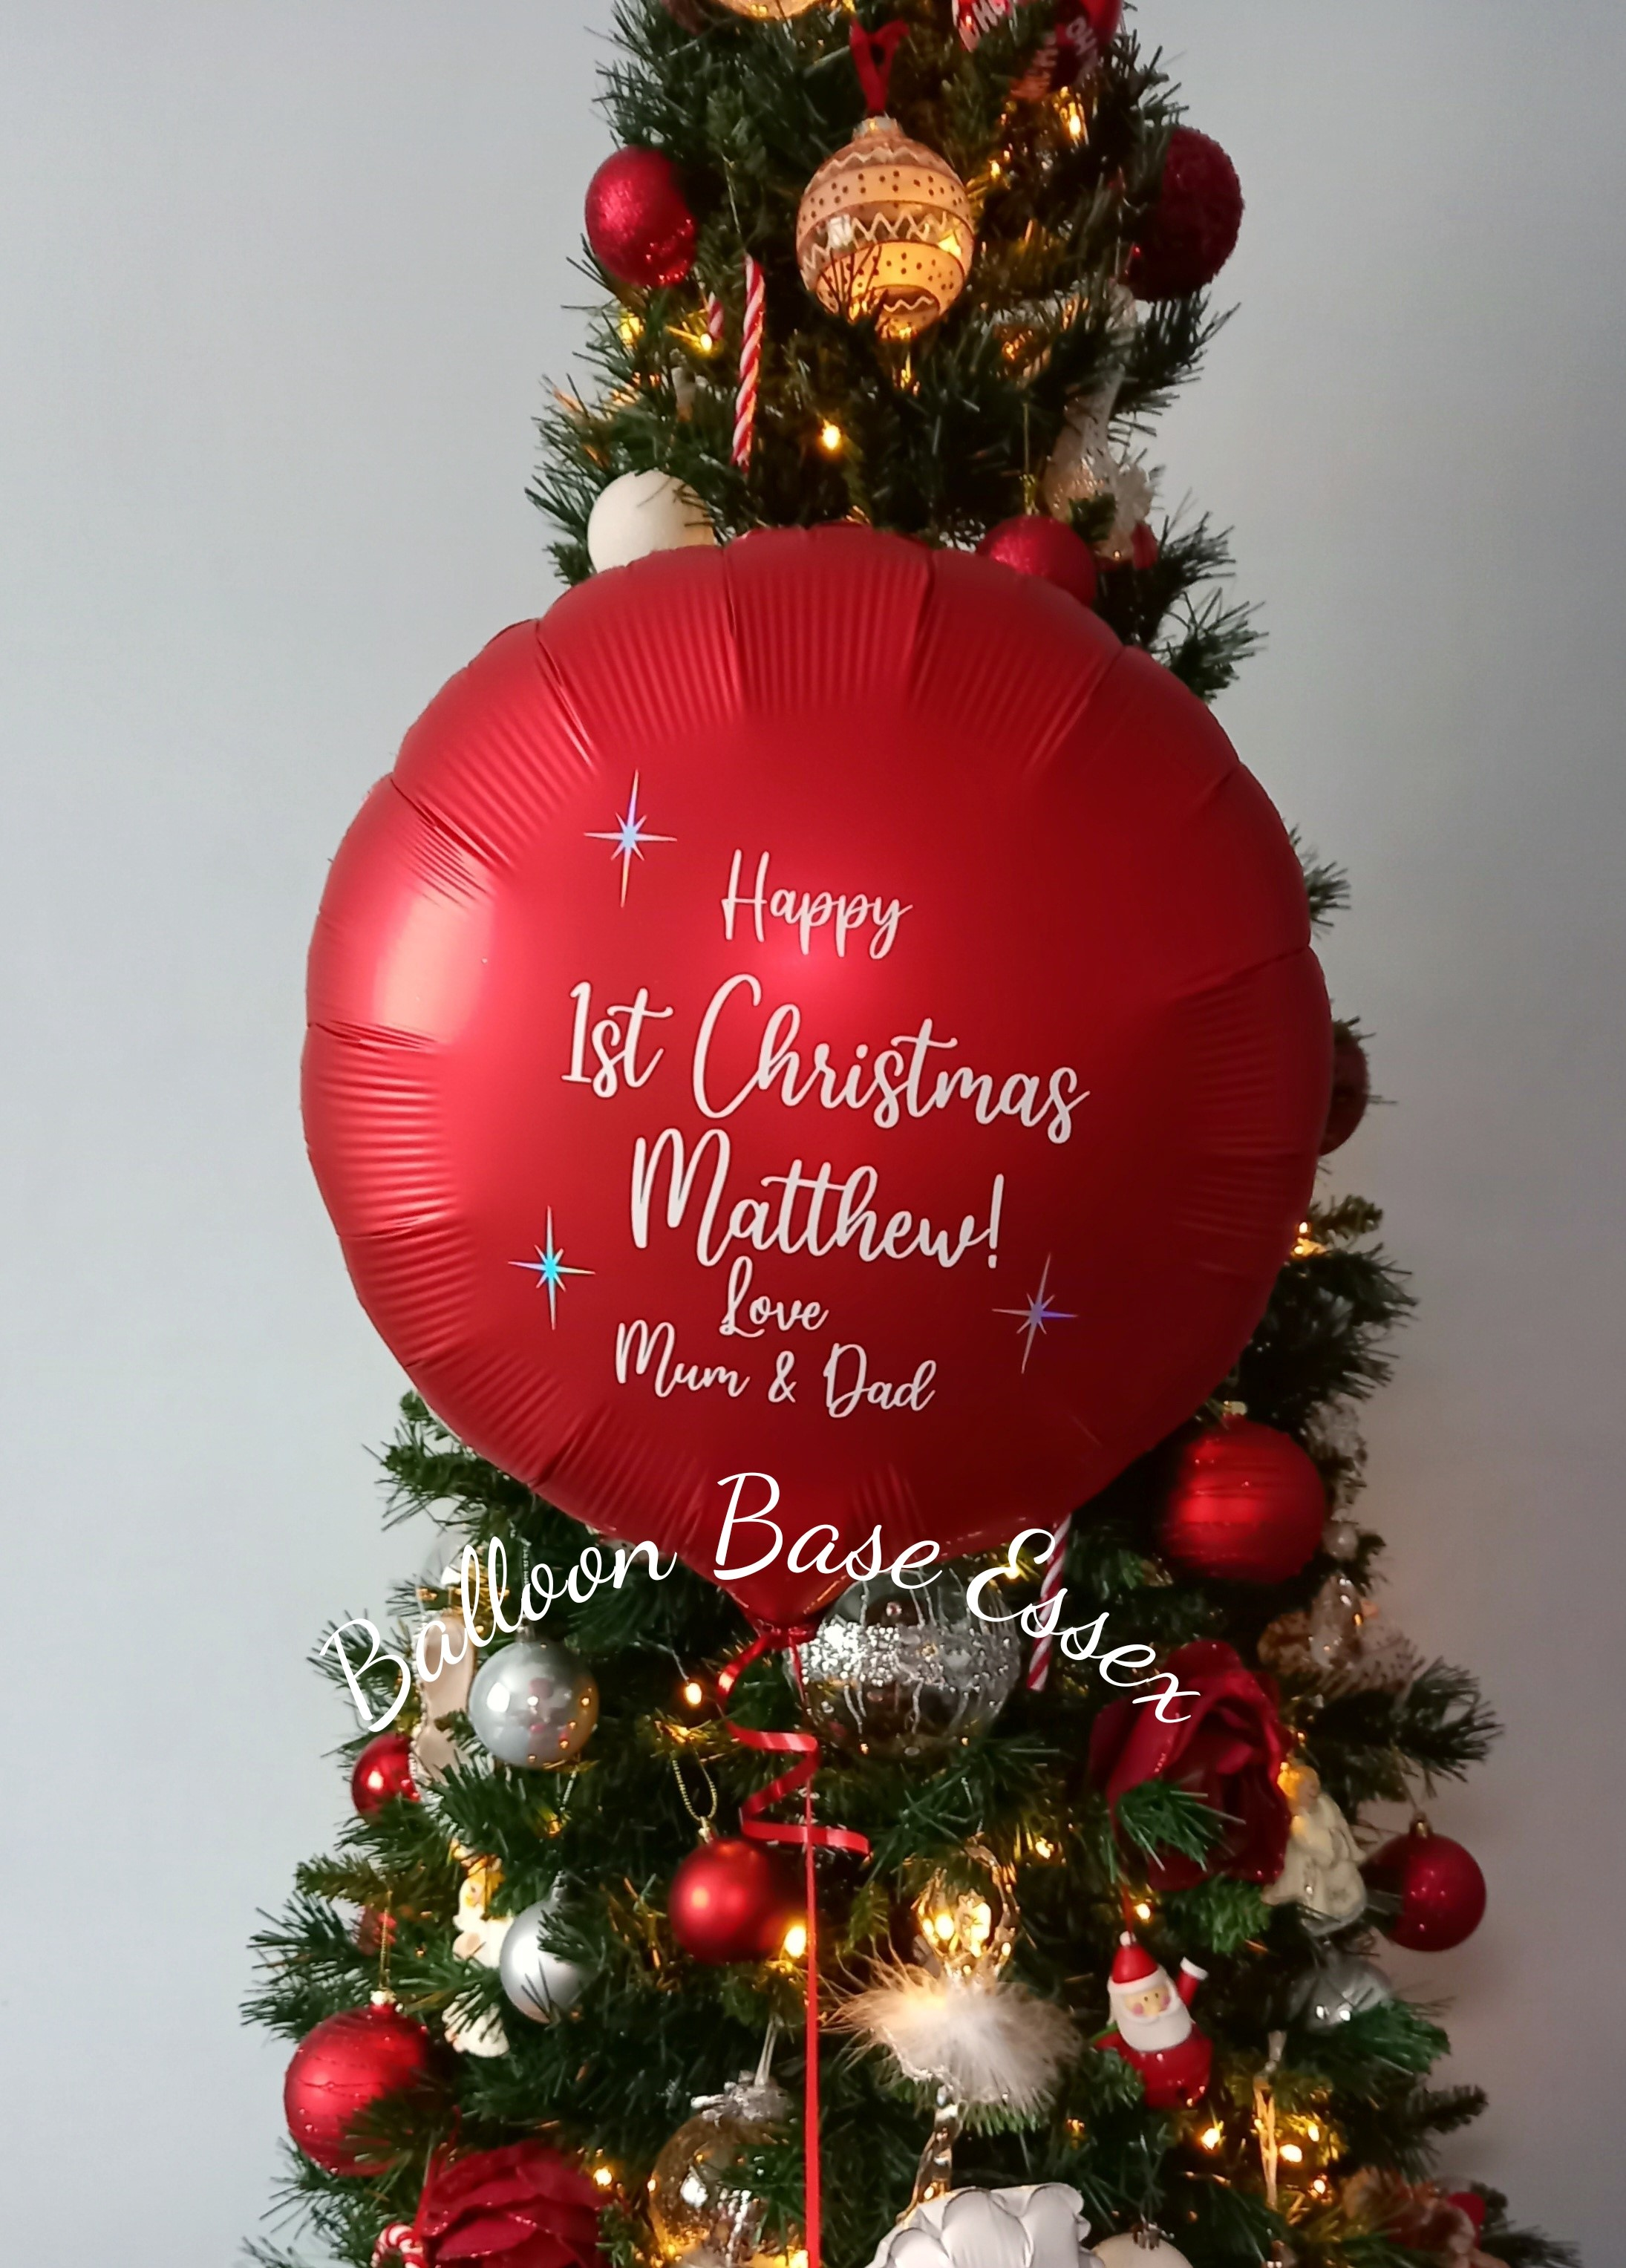 Red 1st Christmas balloon